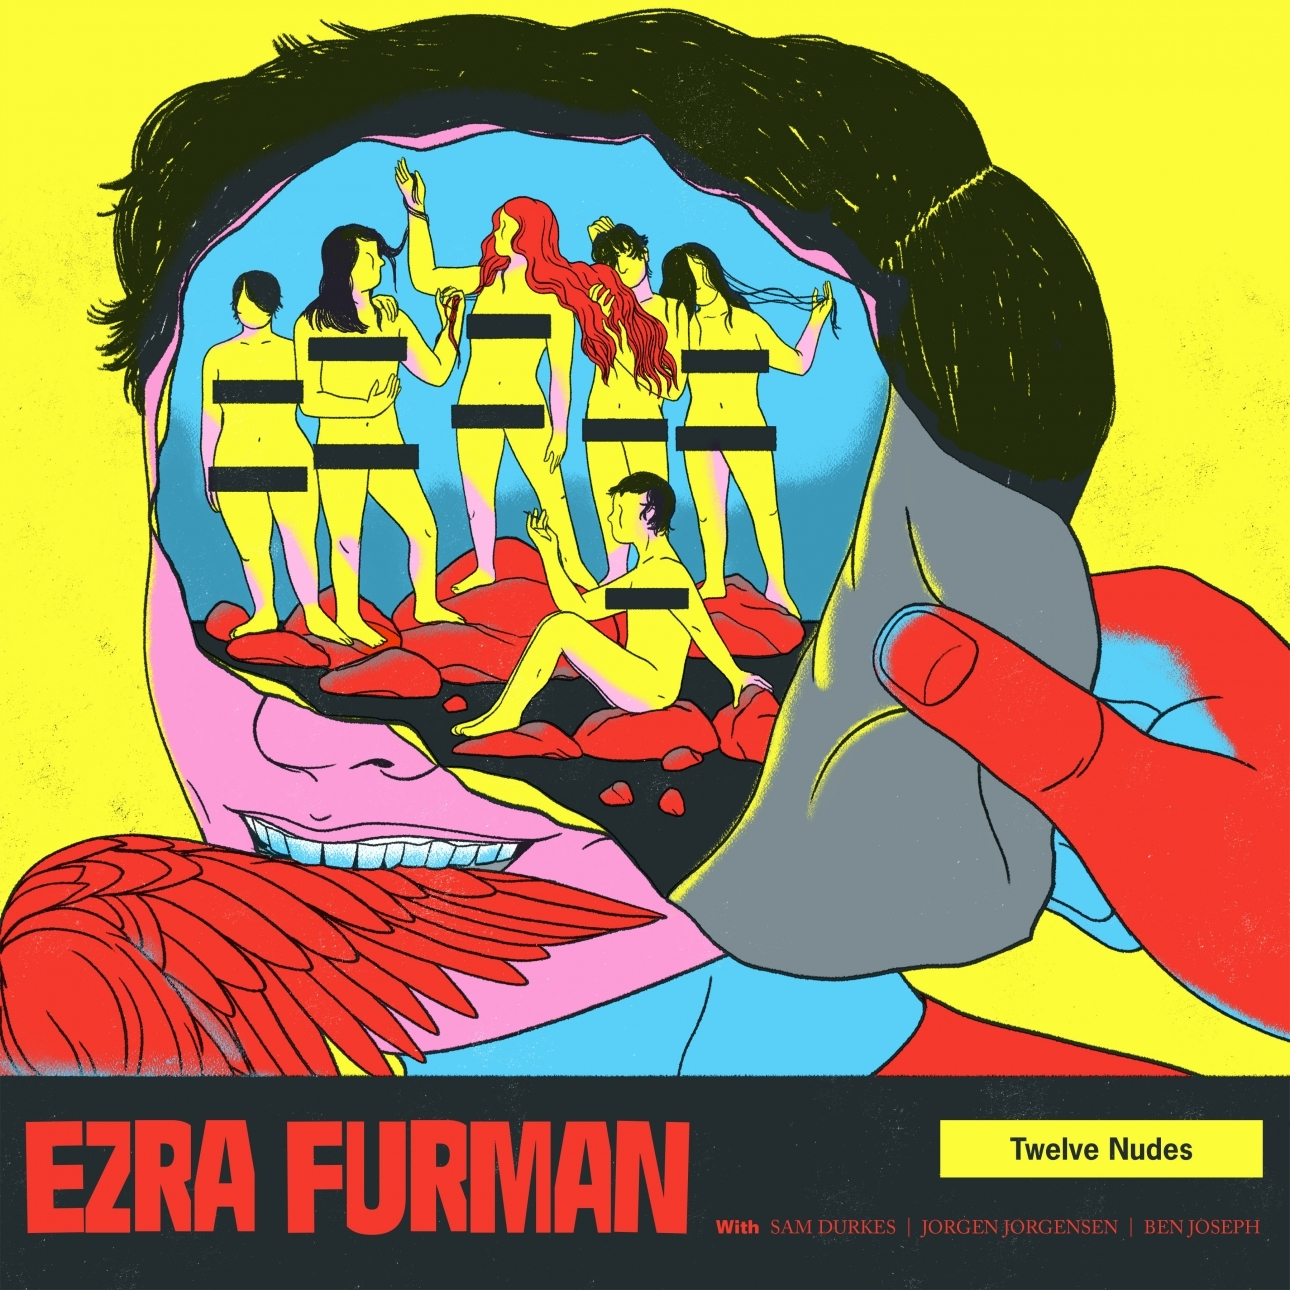 Ezra Furman's 'Twelve Nudes' is a love letter to the punk genre, full of pain, passion and fervour